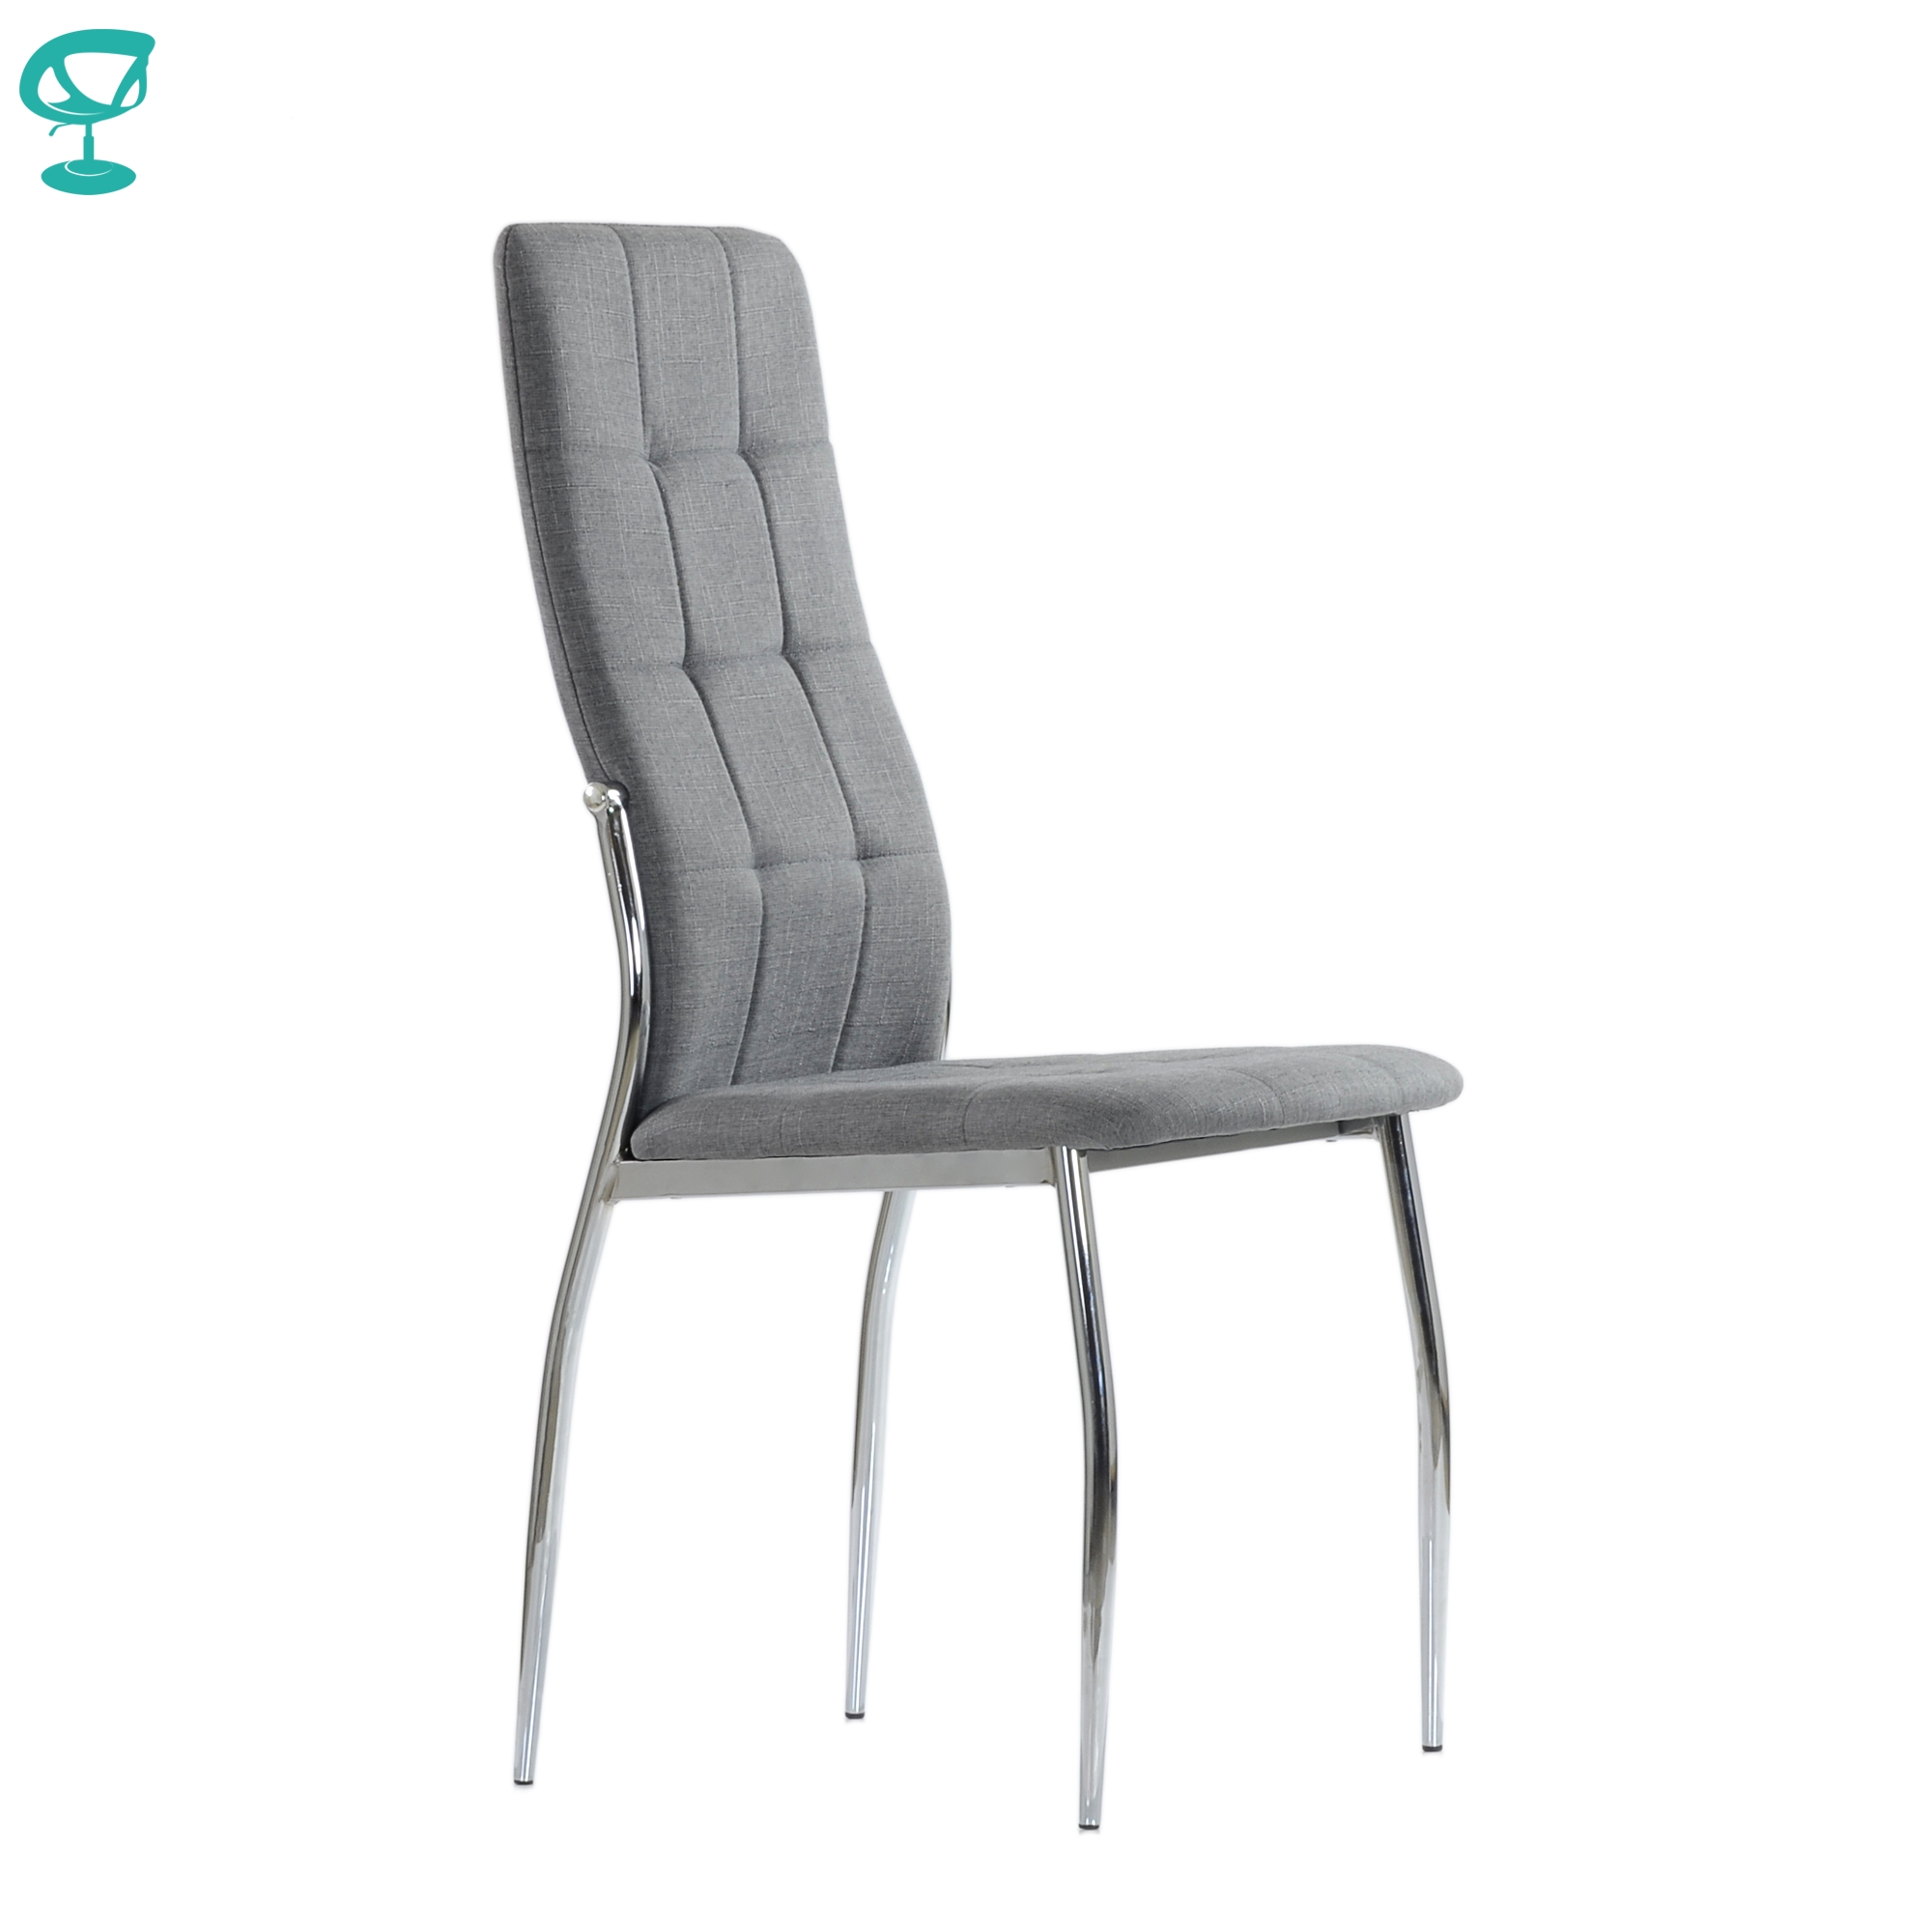 95728 Barneo S-68 chair table soft сидением light gray fabric chair kitchen chair for coffee shop chair for restaurant legs chrome